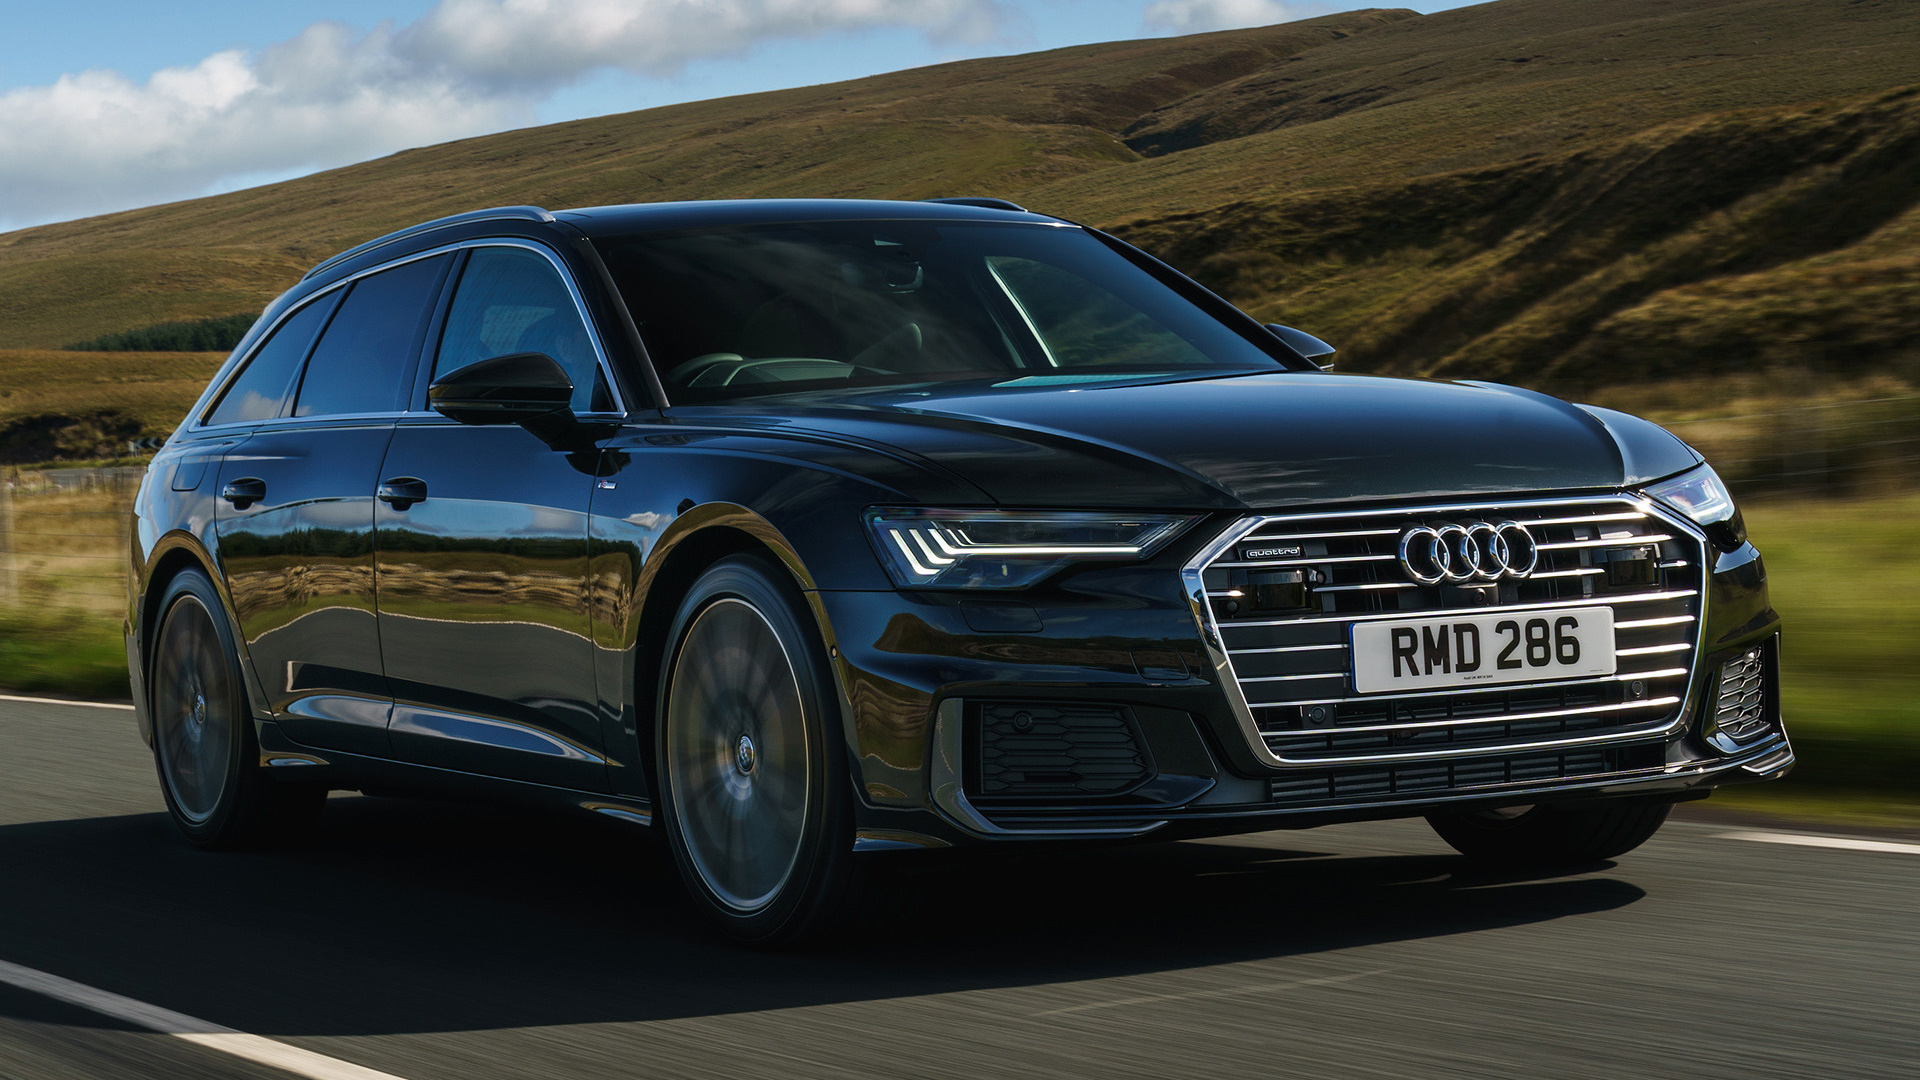 2018 Audi A6 Avant S Line Uk Wallpapers And Hd Images